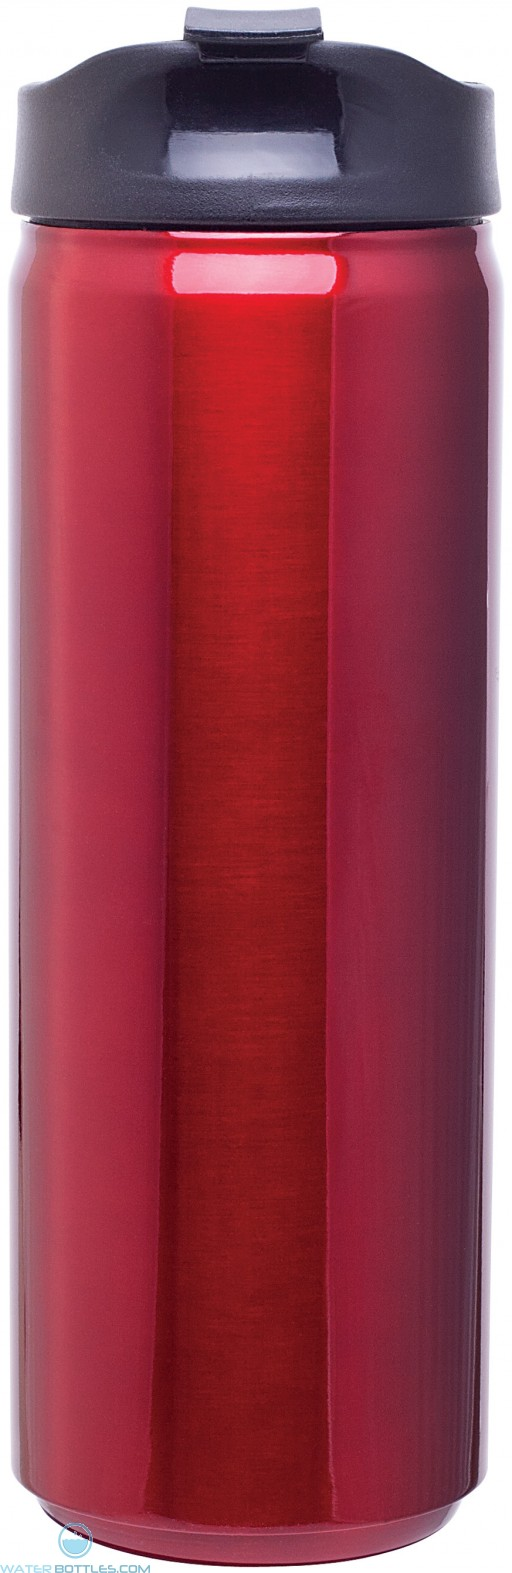 16 oz ss can-red